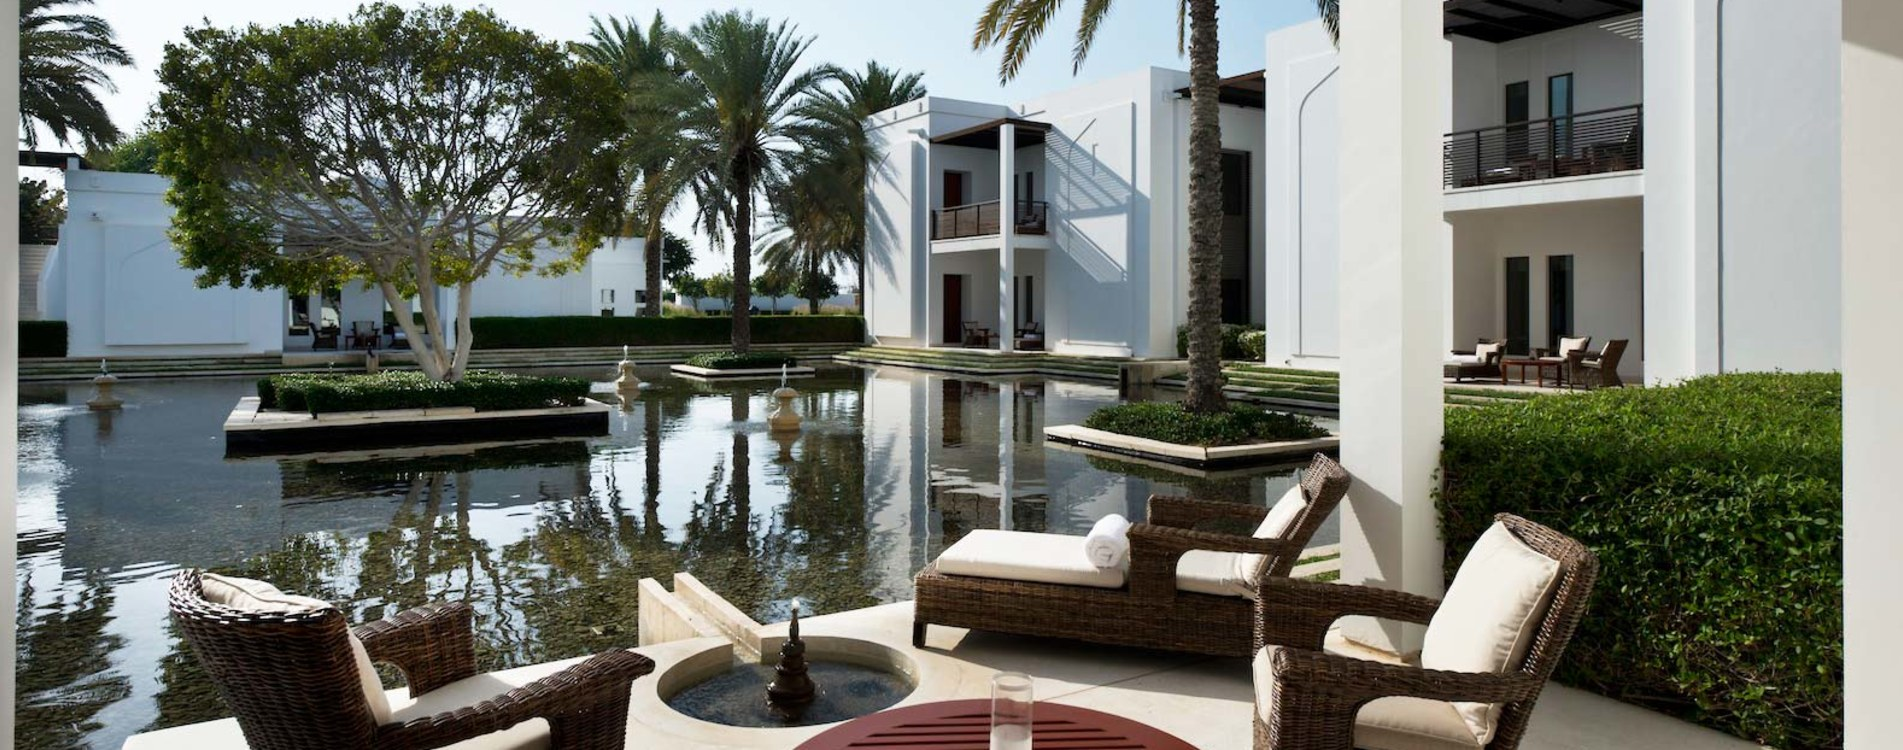 Chedi-Club-Suite-Terrace-Water-Garden-View-Muscat.jpg